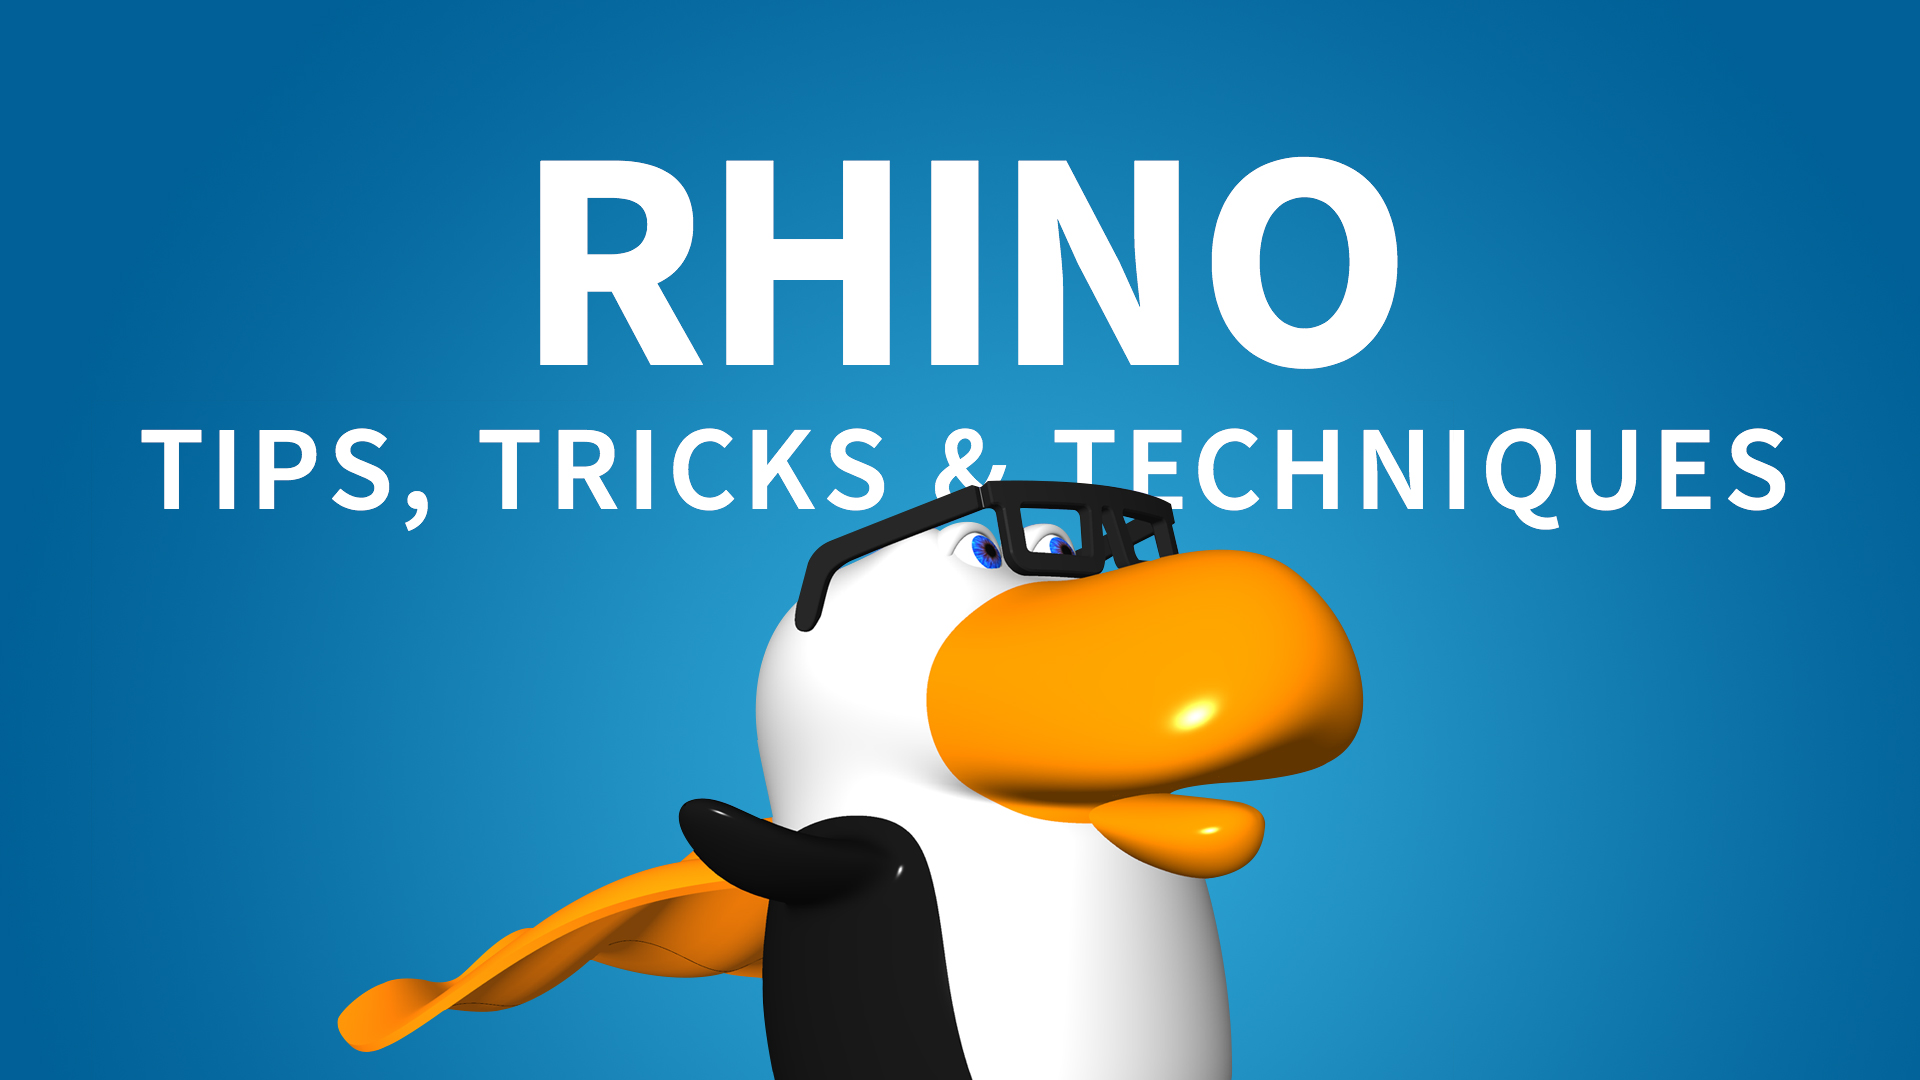 Rhino: Tips, Tricks & Techniques